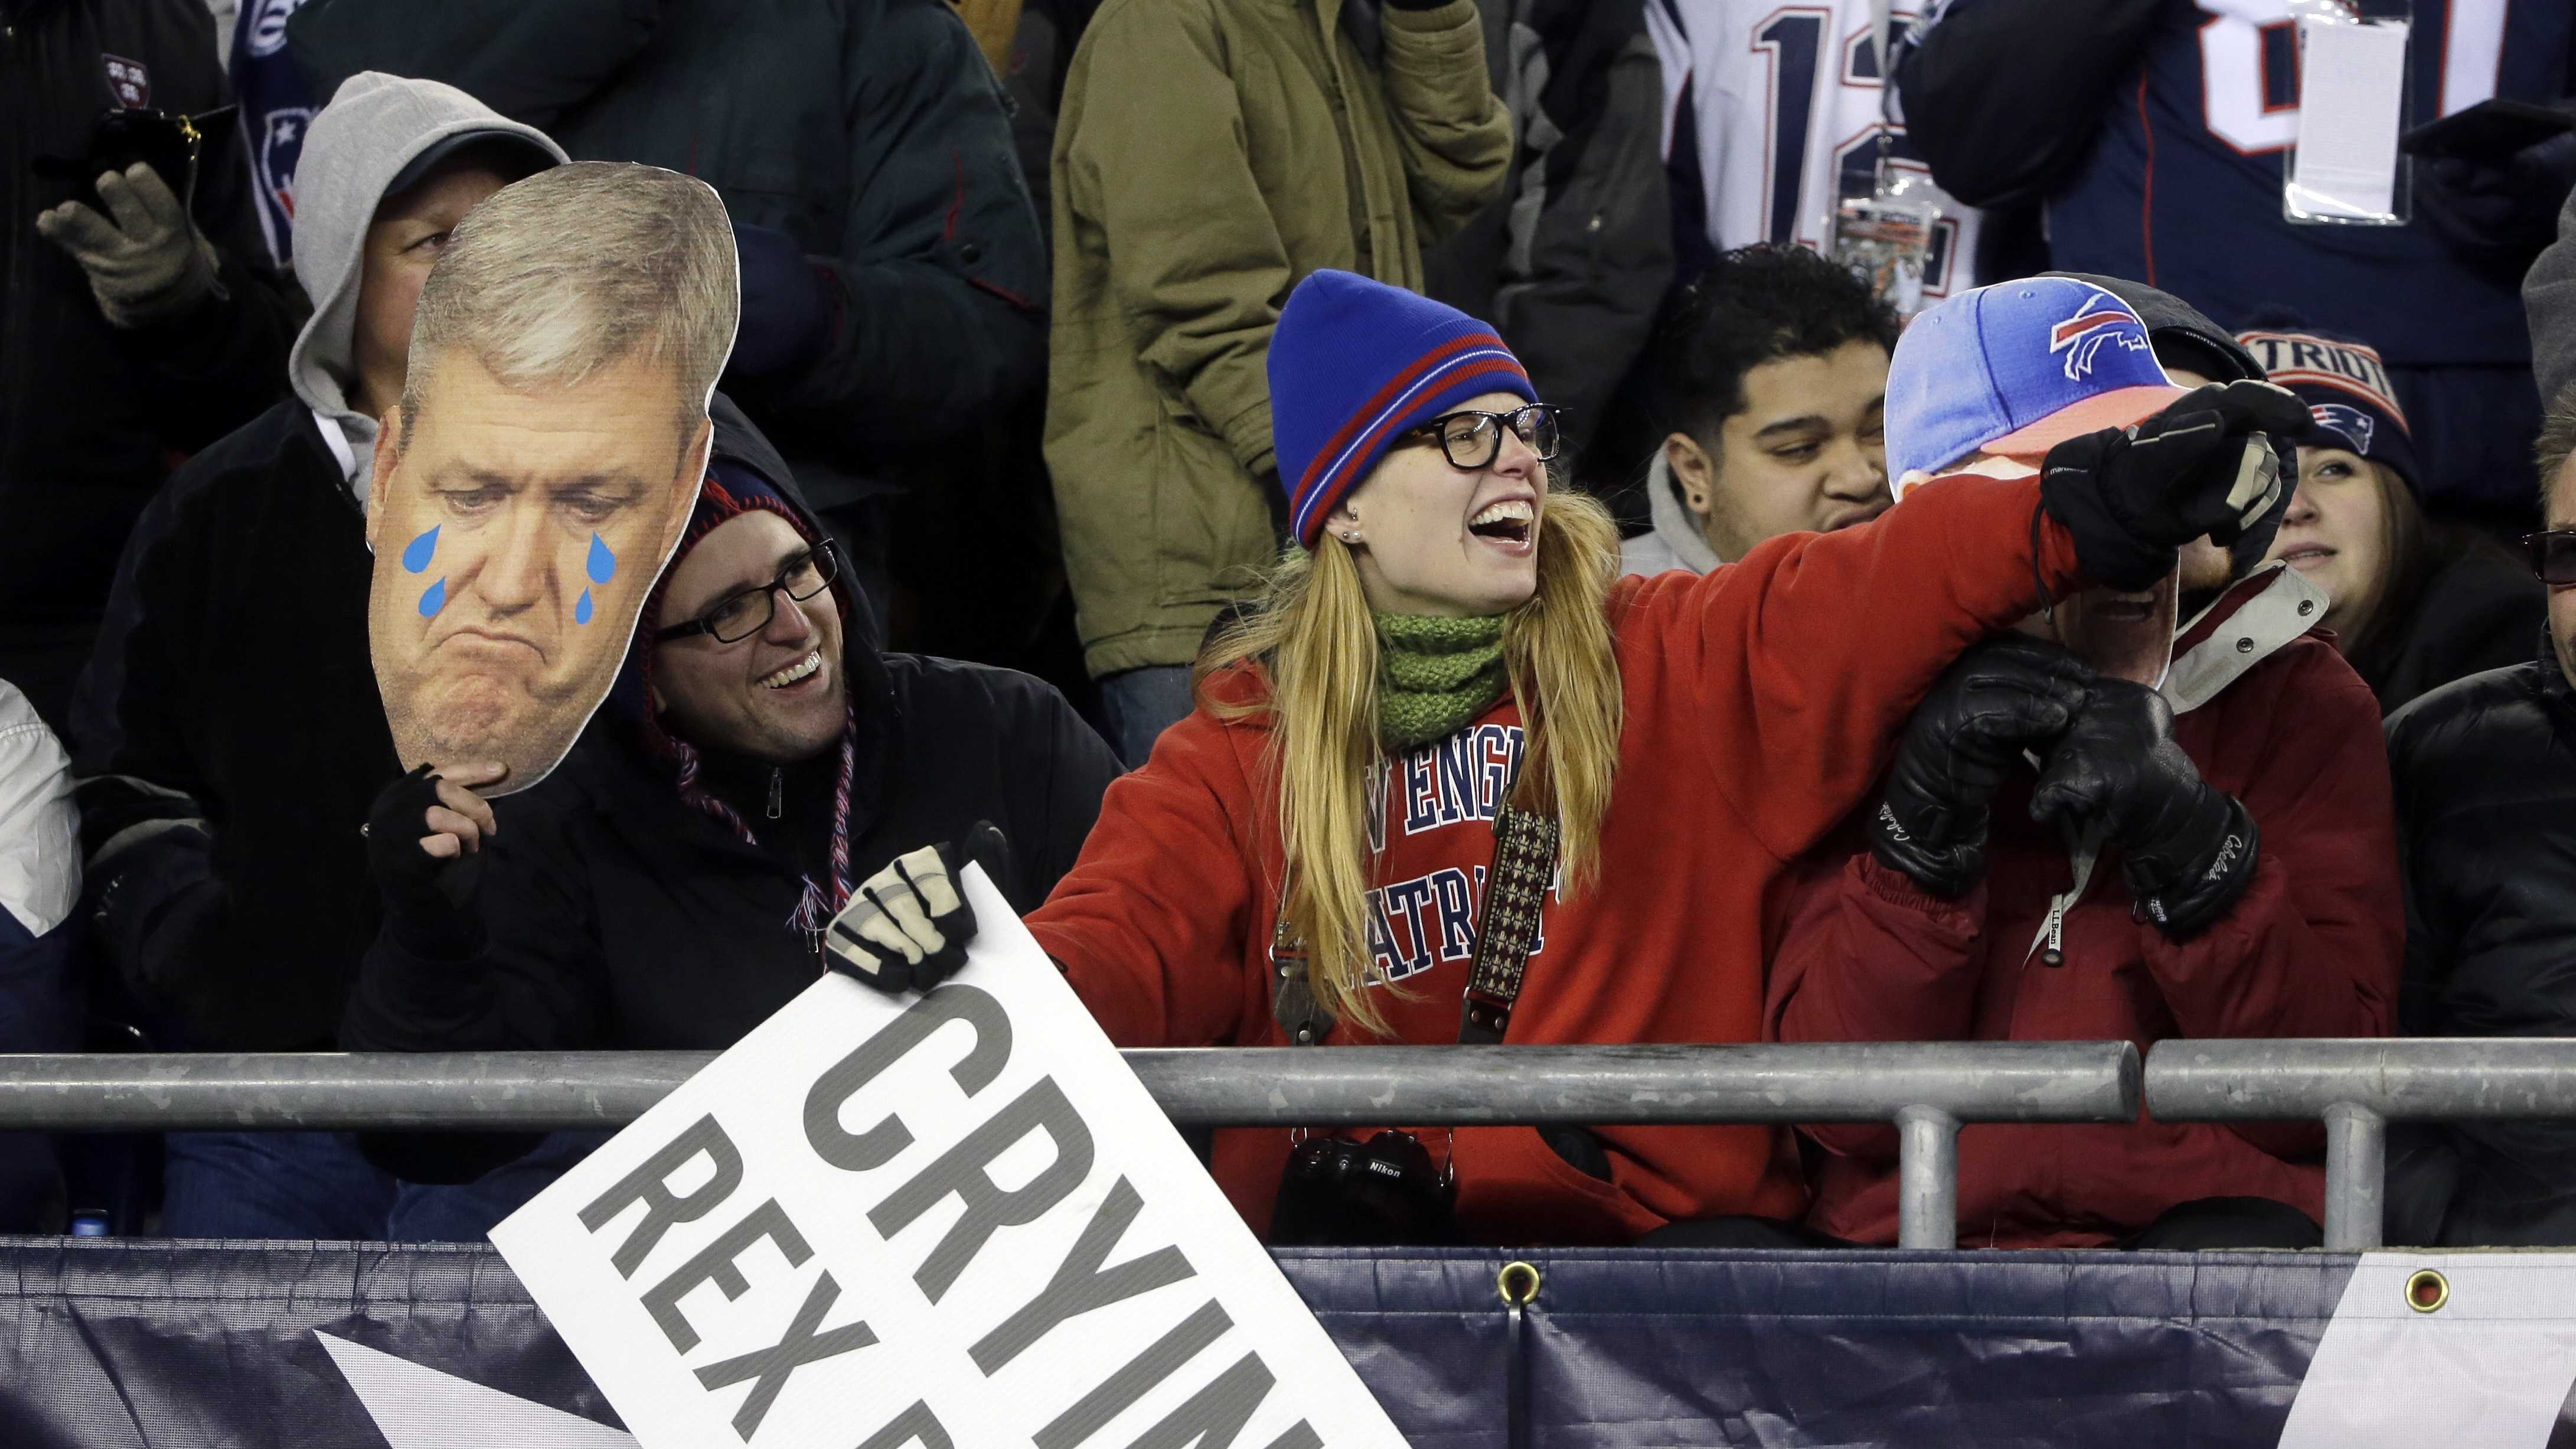 New England Patriots fans hold signs and photos referring to Buffalo Bills head coach Rex Ryan in the first half of an NFL football game Monday, Nov. 23, 2015, in Foxborough, Mass. (AP Photo/Steven Senne)